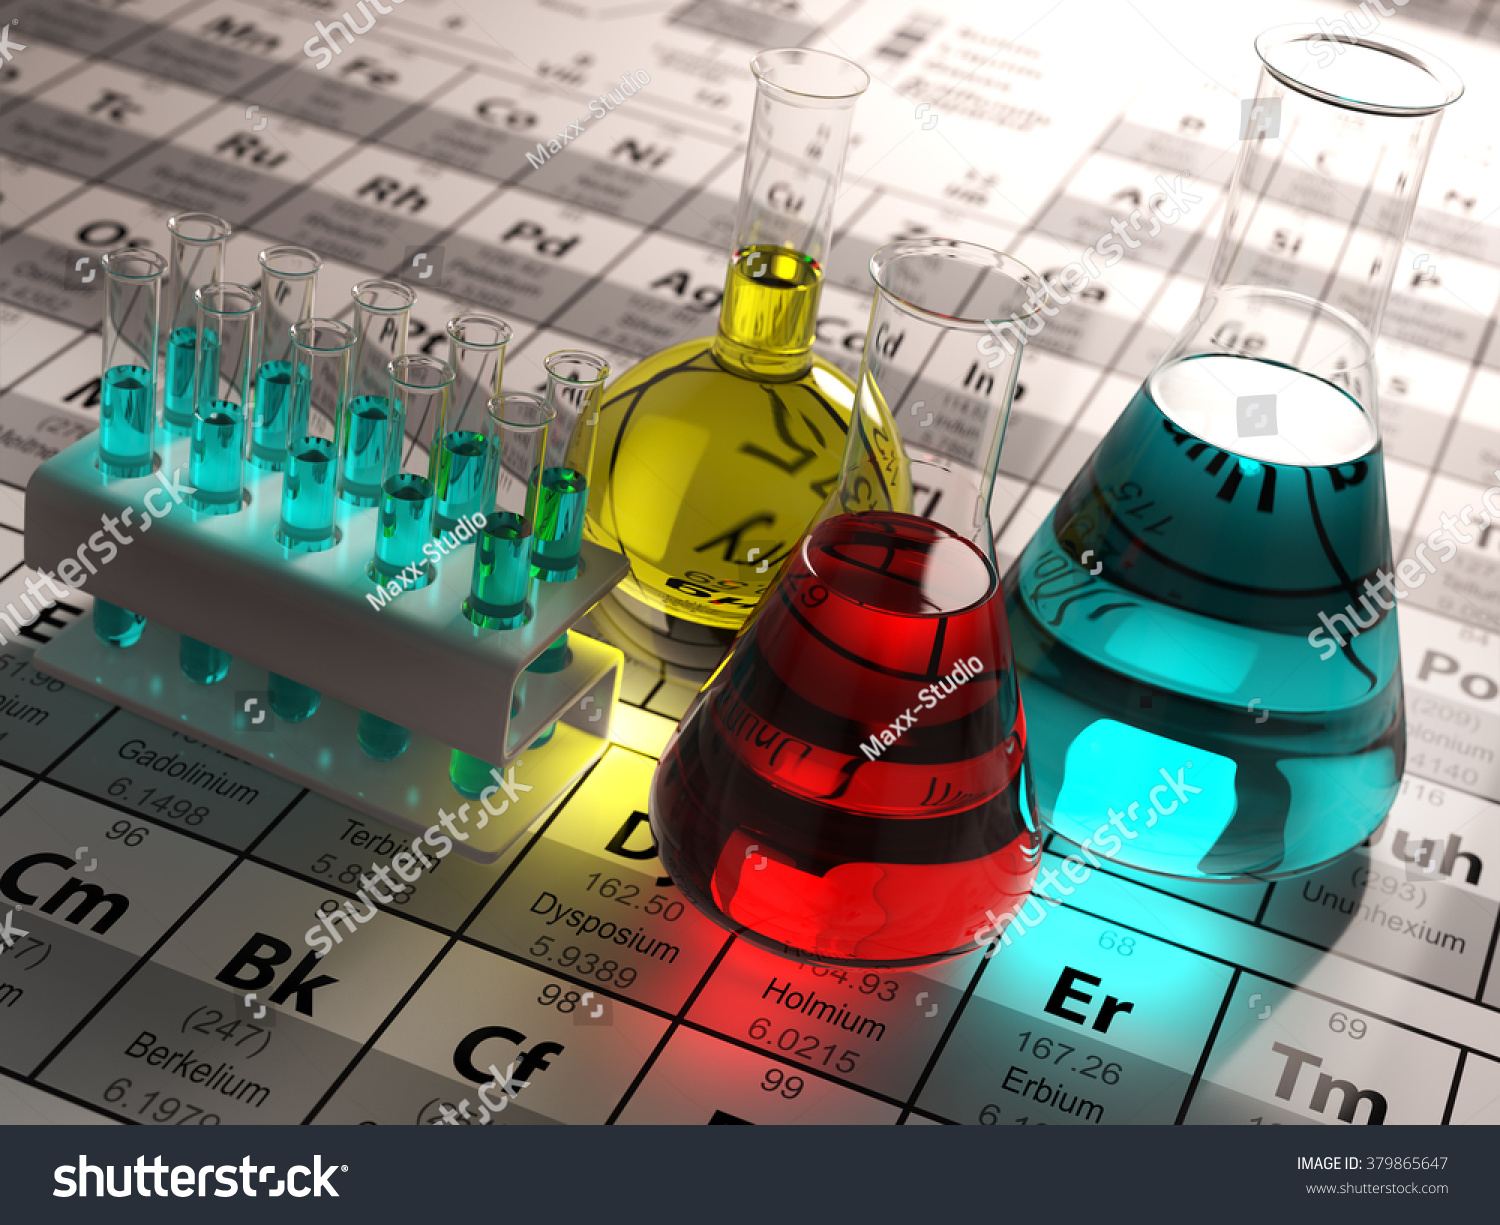 Laboratory test tubes flasks colored liquids stock illustration laboratory test tubes and flasks with colored liquids on the periodic table of elements science gamestrikefo Choice Image